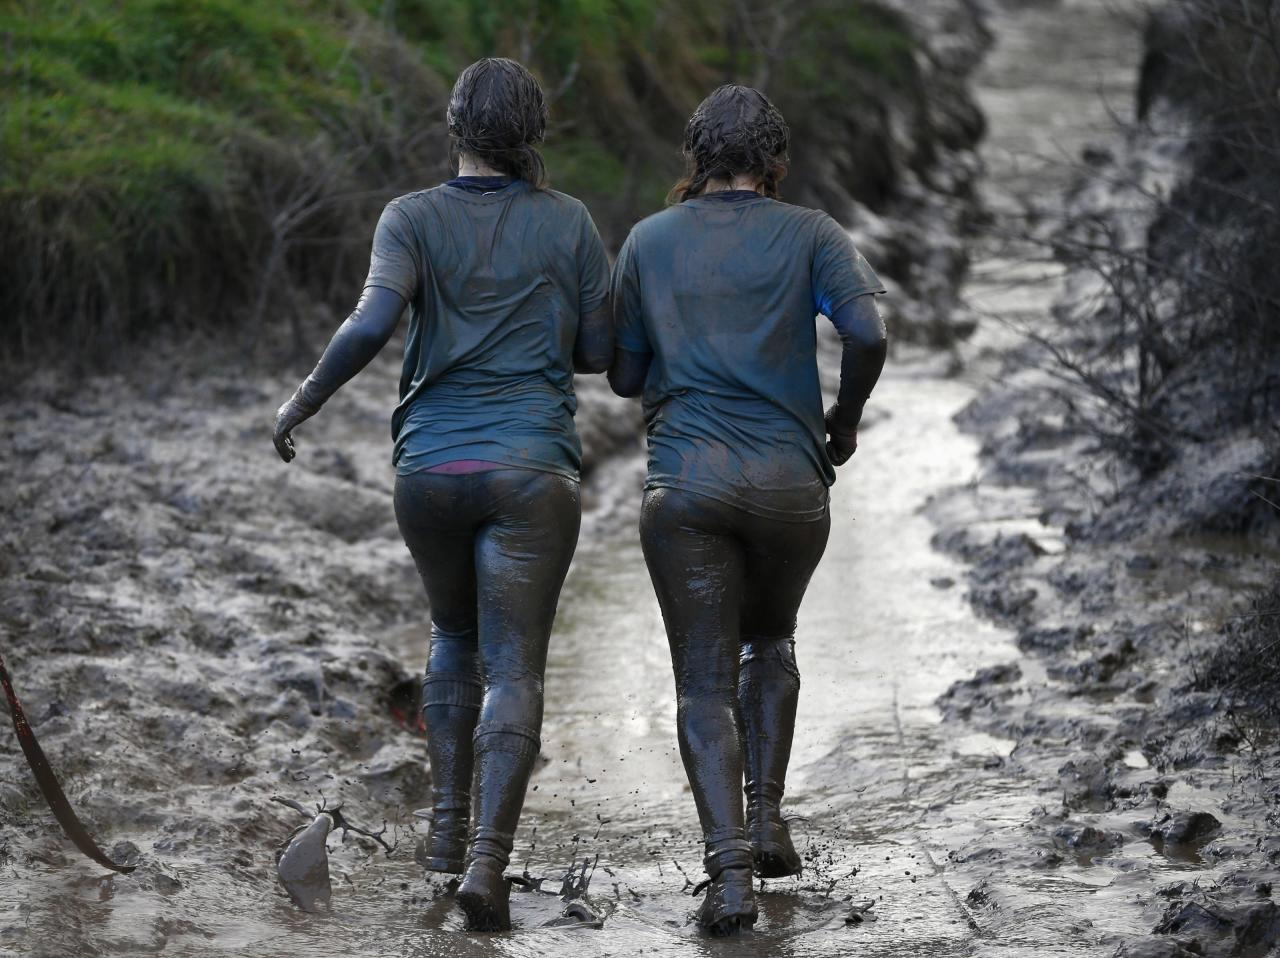 Competitors run through mud during the Tough Guy event in Perton, central England, January 26, 2014. The annual event to raise cash for charity challenges thousands of international competitors in a cross country run followed by an assault course consisting of obstacles including water, fire and tunnels. REUTERS/Darren Staples (BRITAIN - Tags: SPORT ATHLETICS SOCIETY)